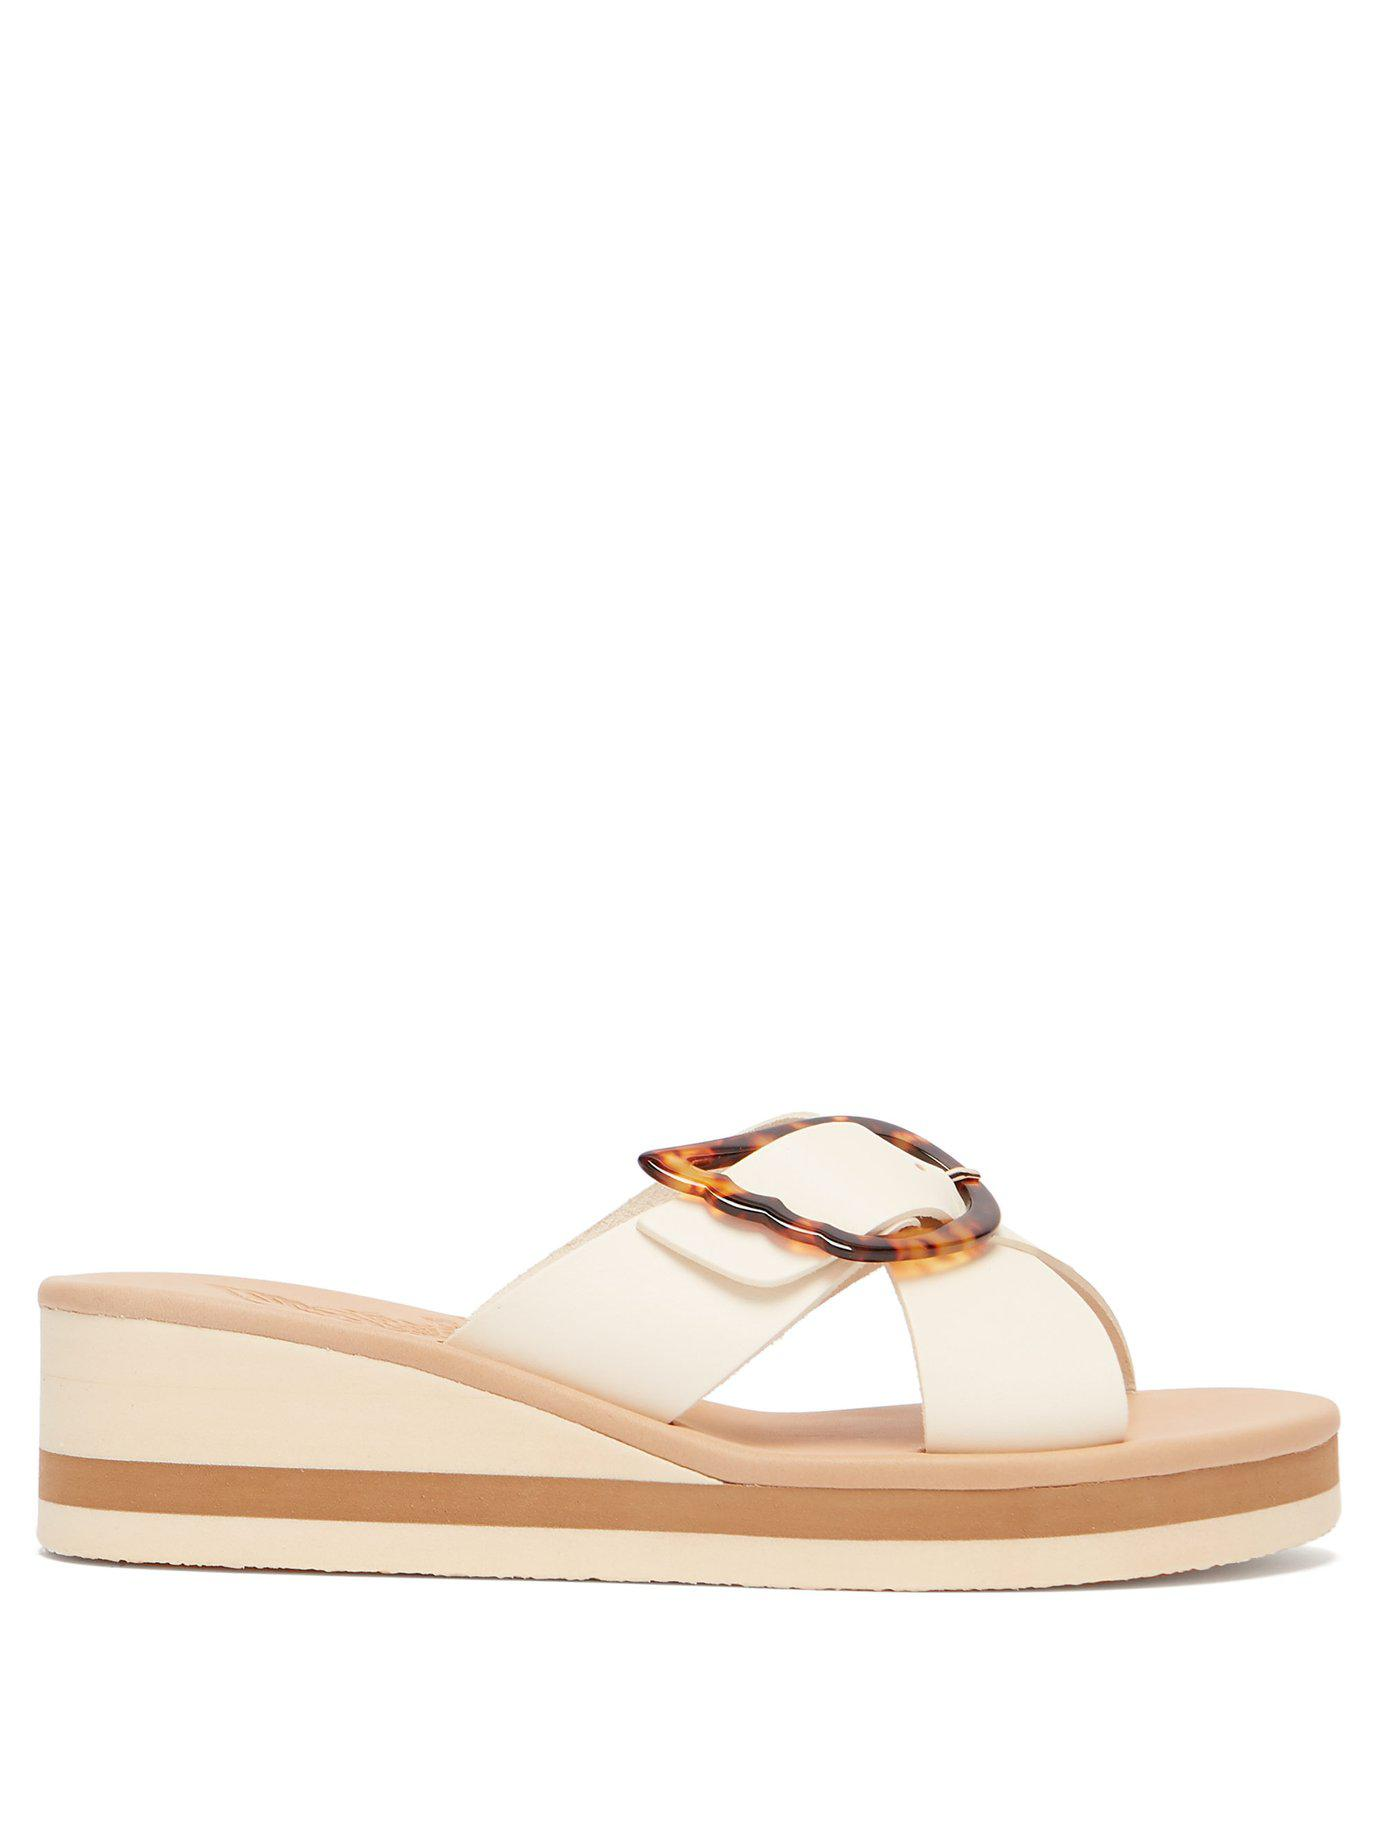 2623530f1 Lyst - Ancient Greek Sandals Thais Rainbow Leather Wedges in White